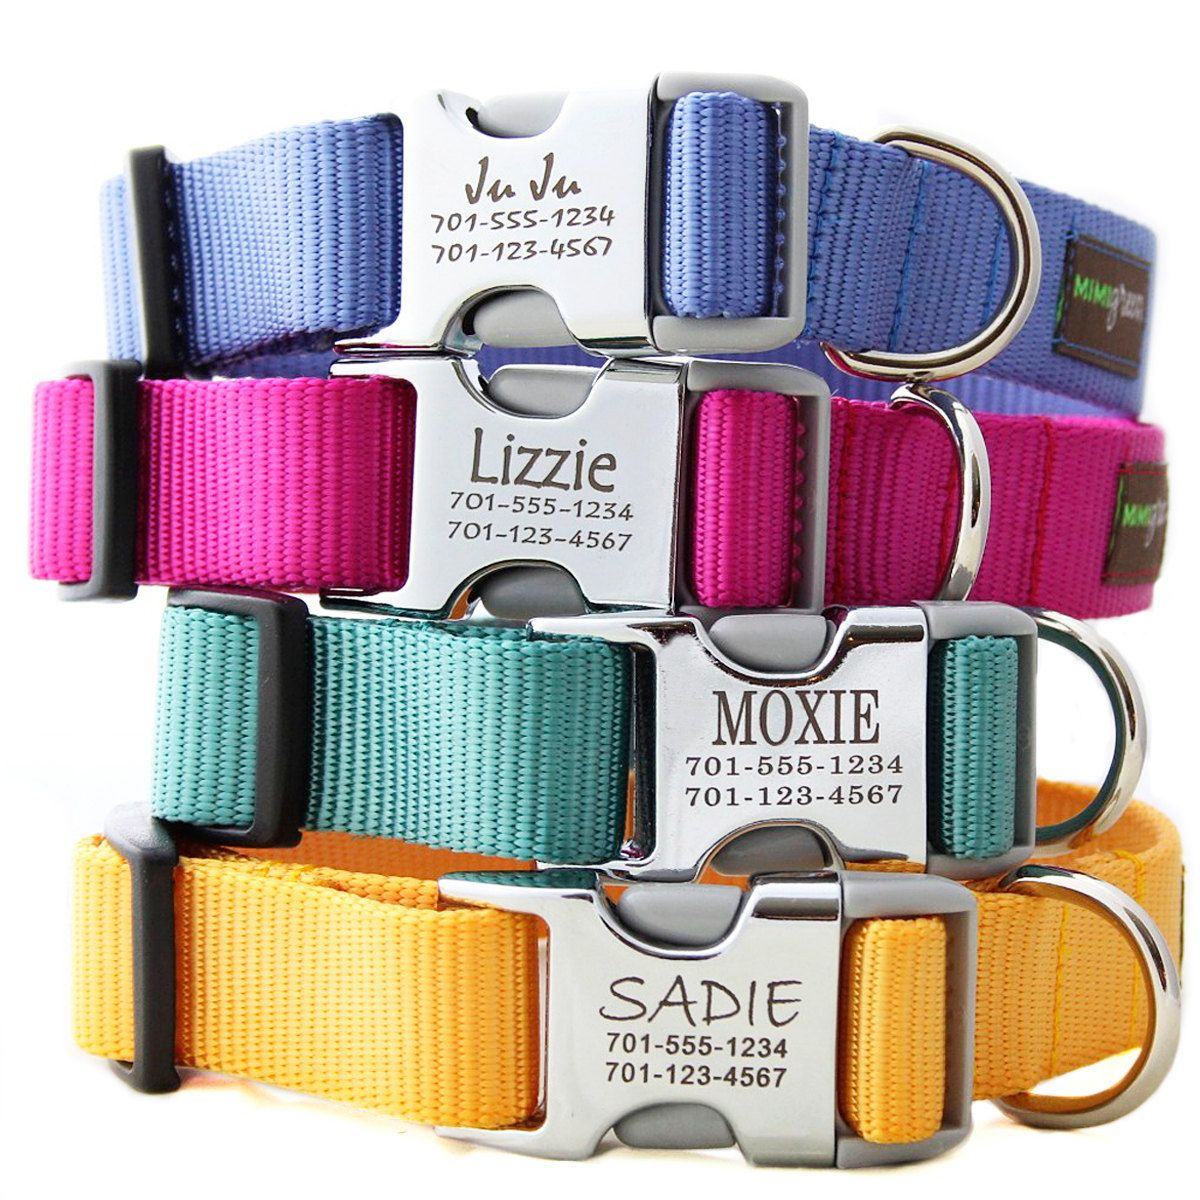 Personalized Dog Collars.. no jingling tag!